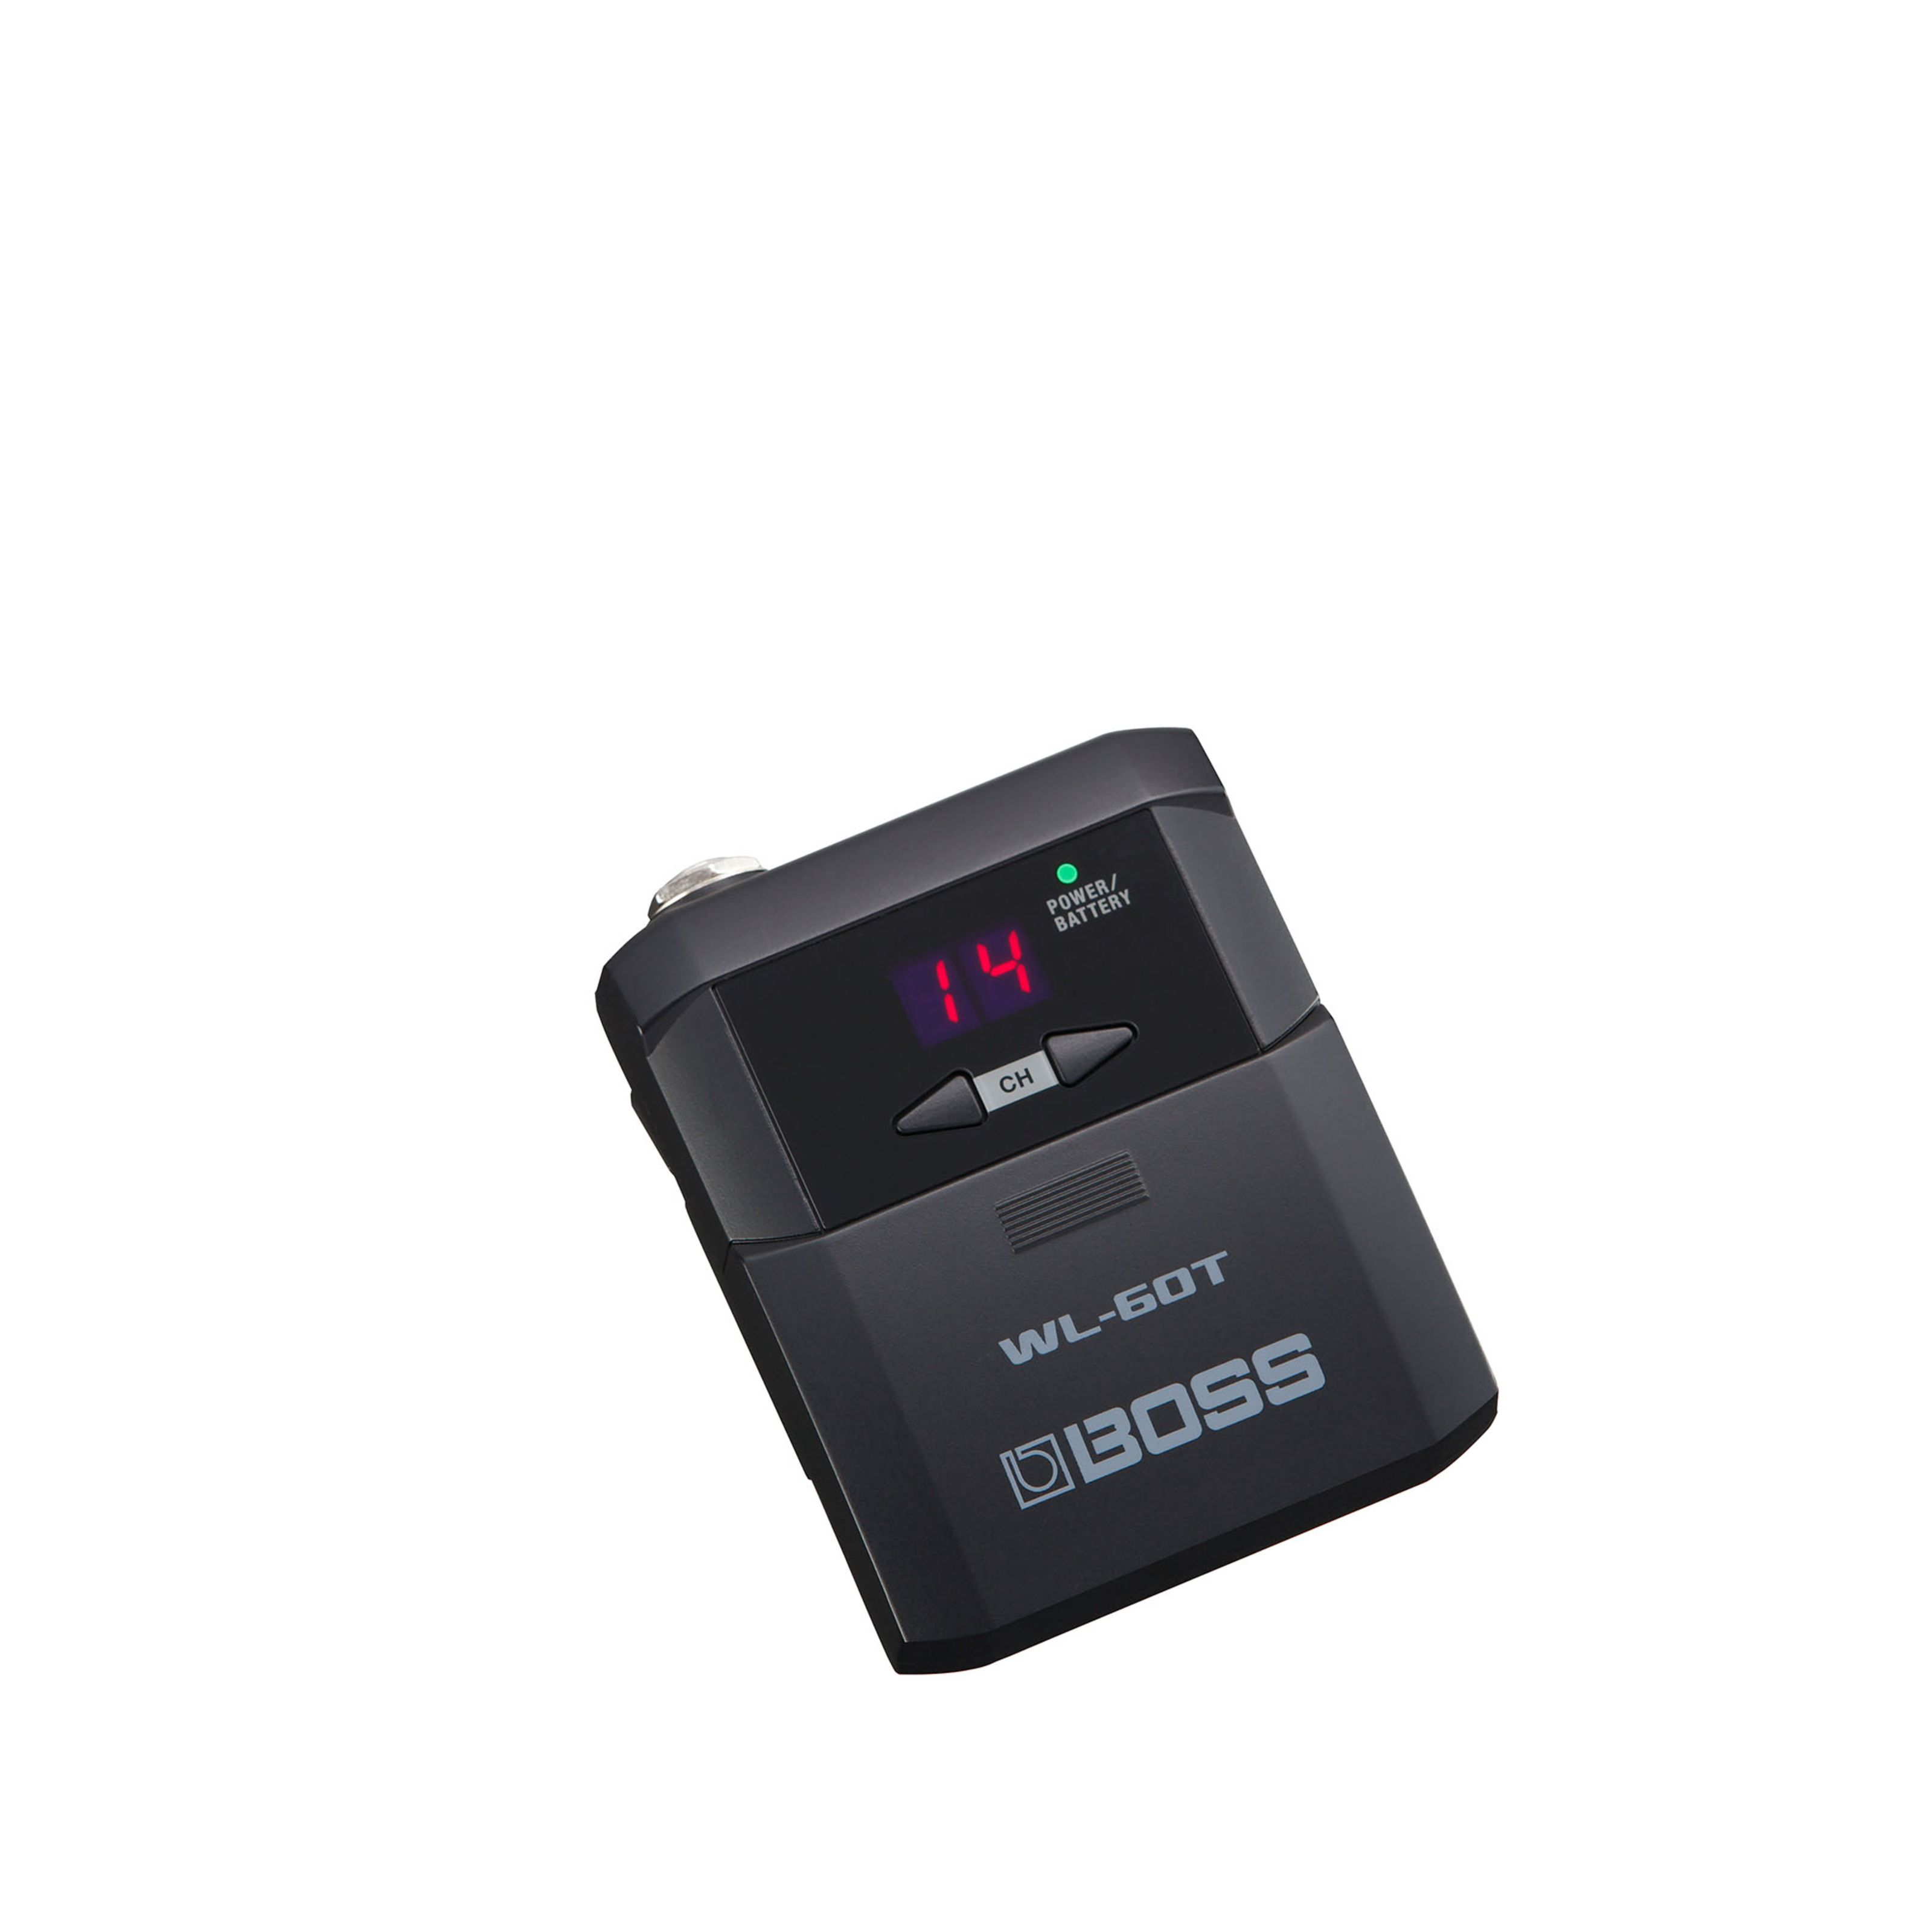 Boss - WL-60T Wireless System Transmitter